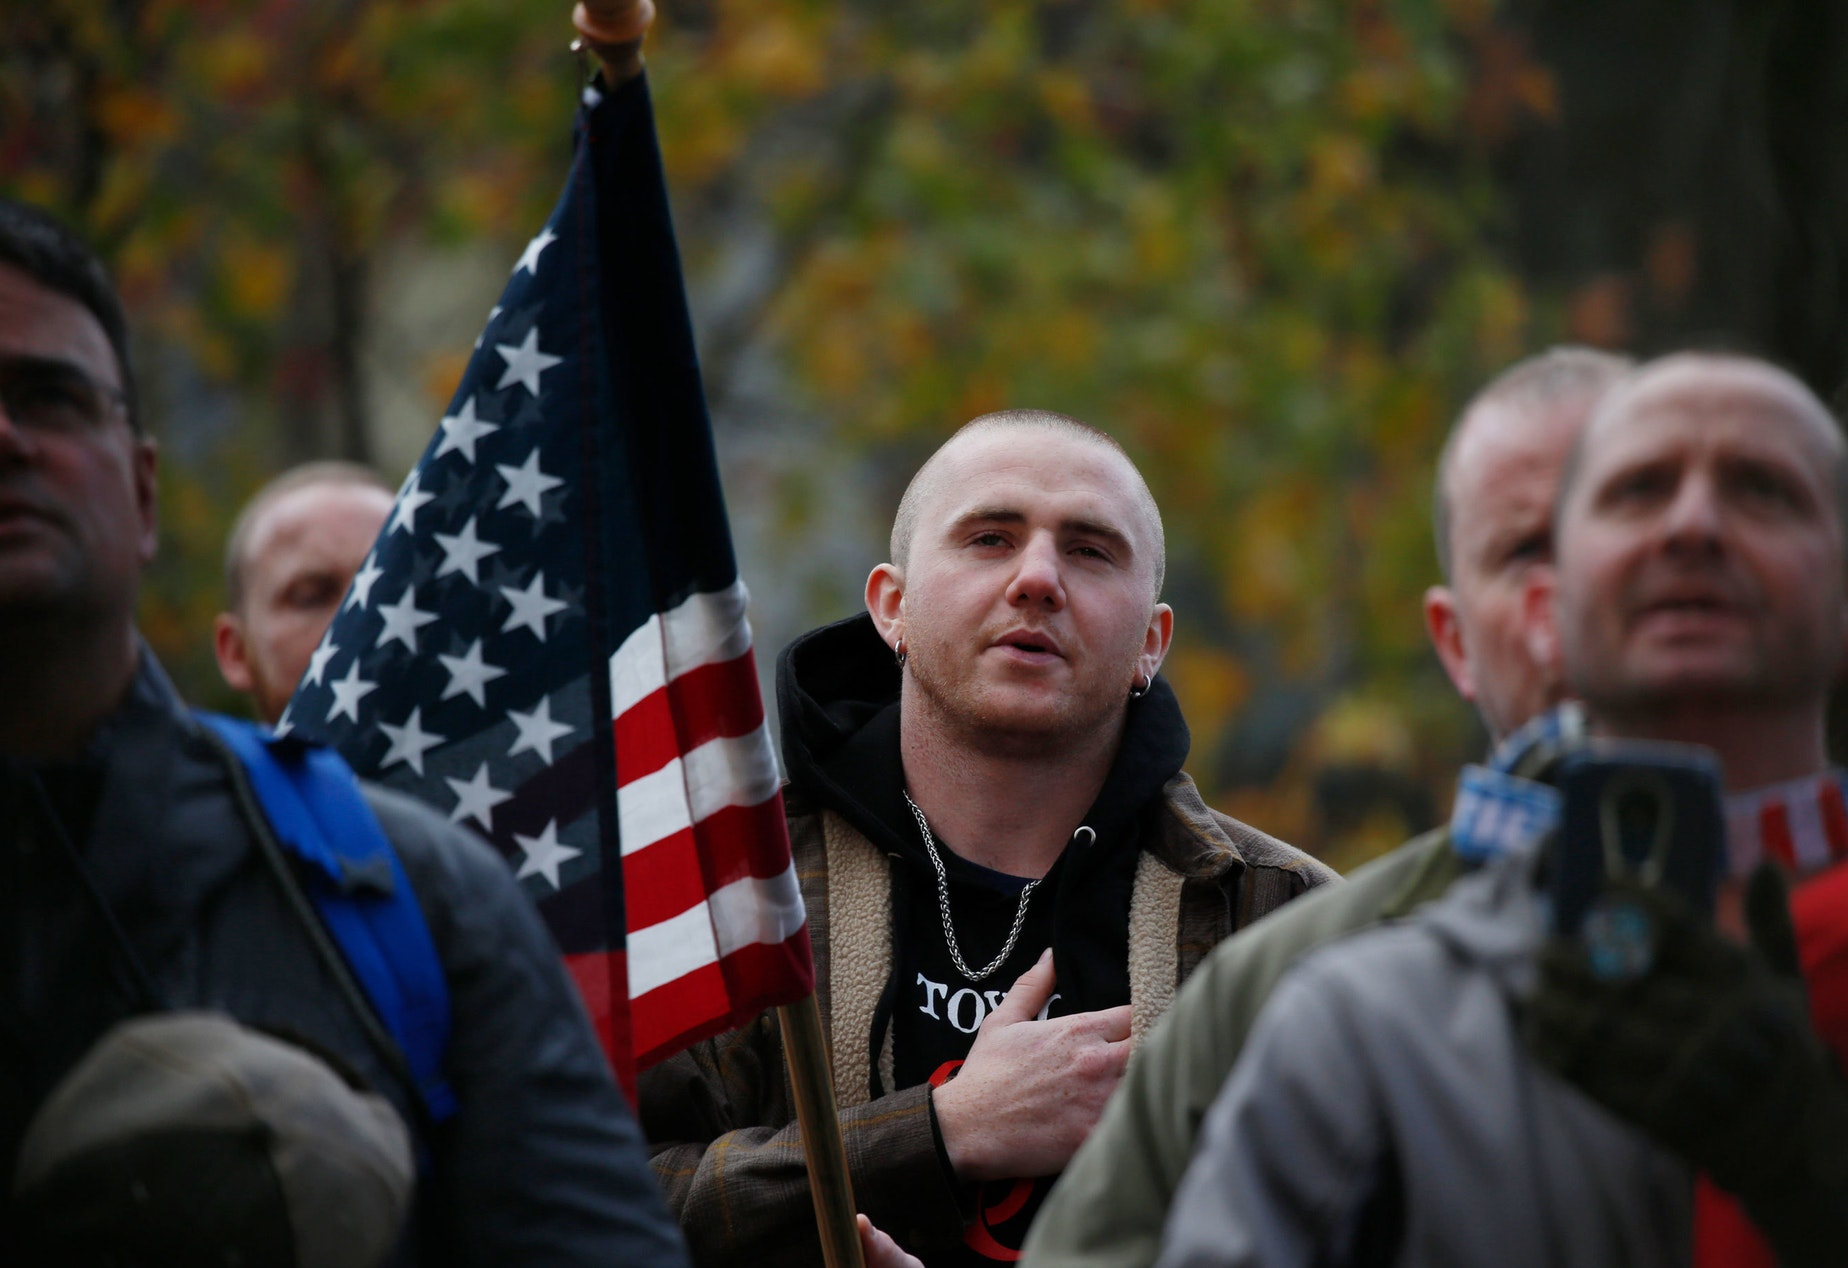 'Not A Paramilitary.' Inside A Washington Militia's Efforts To Go Mainstream